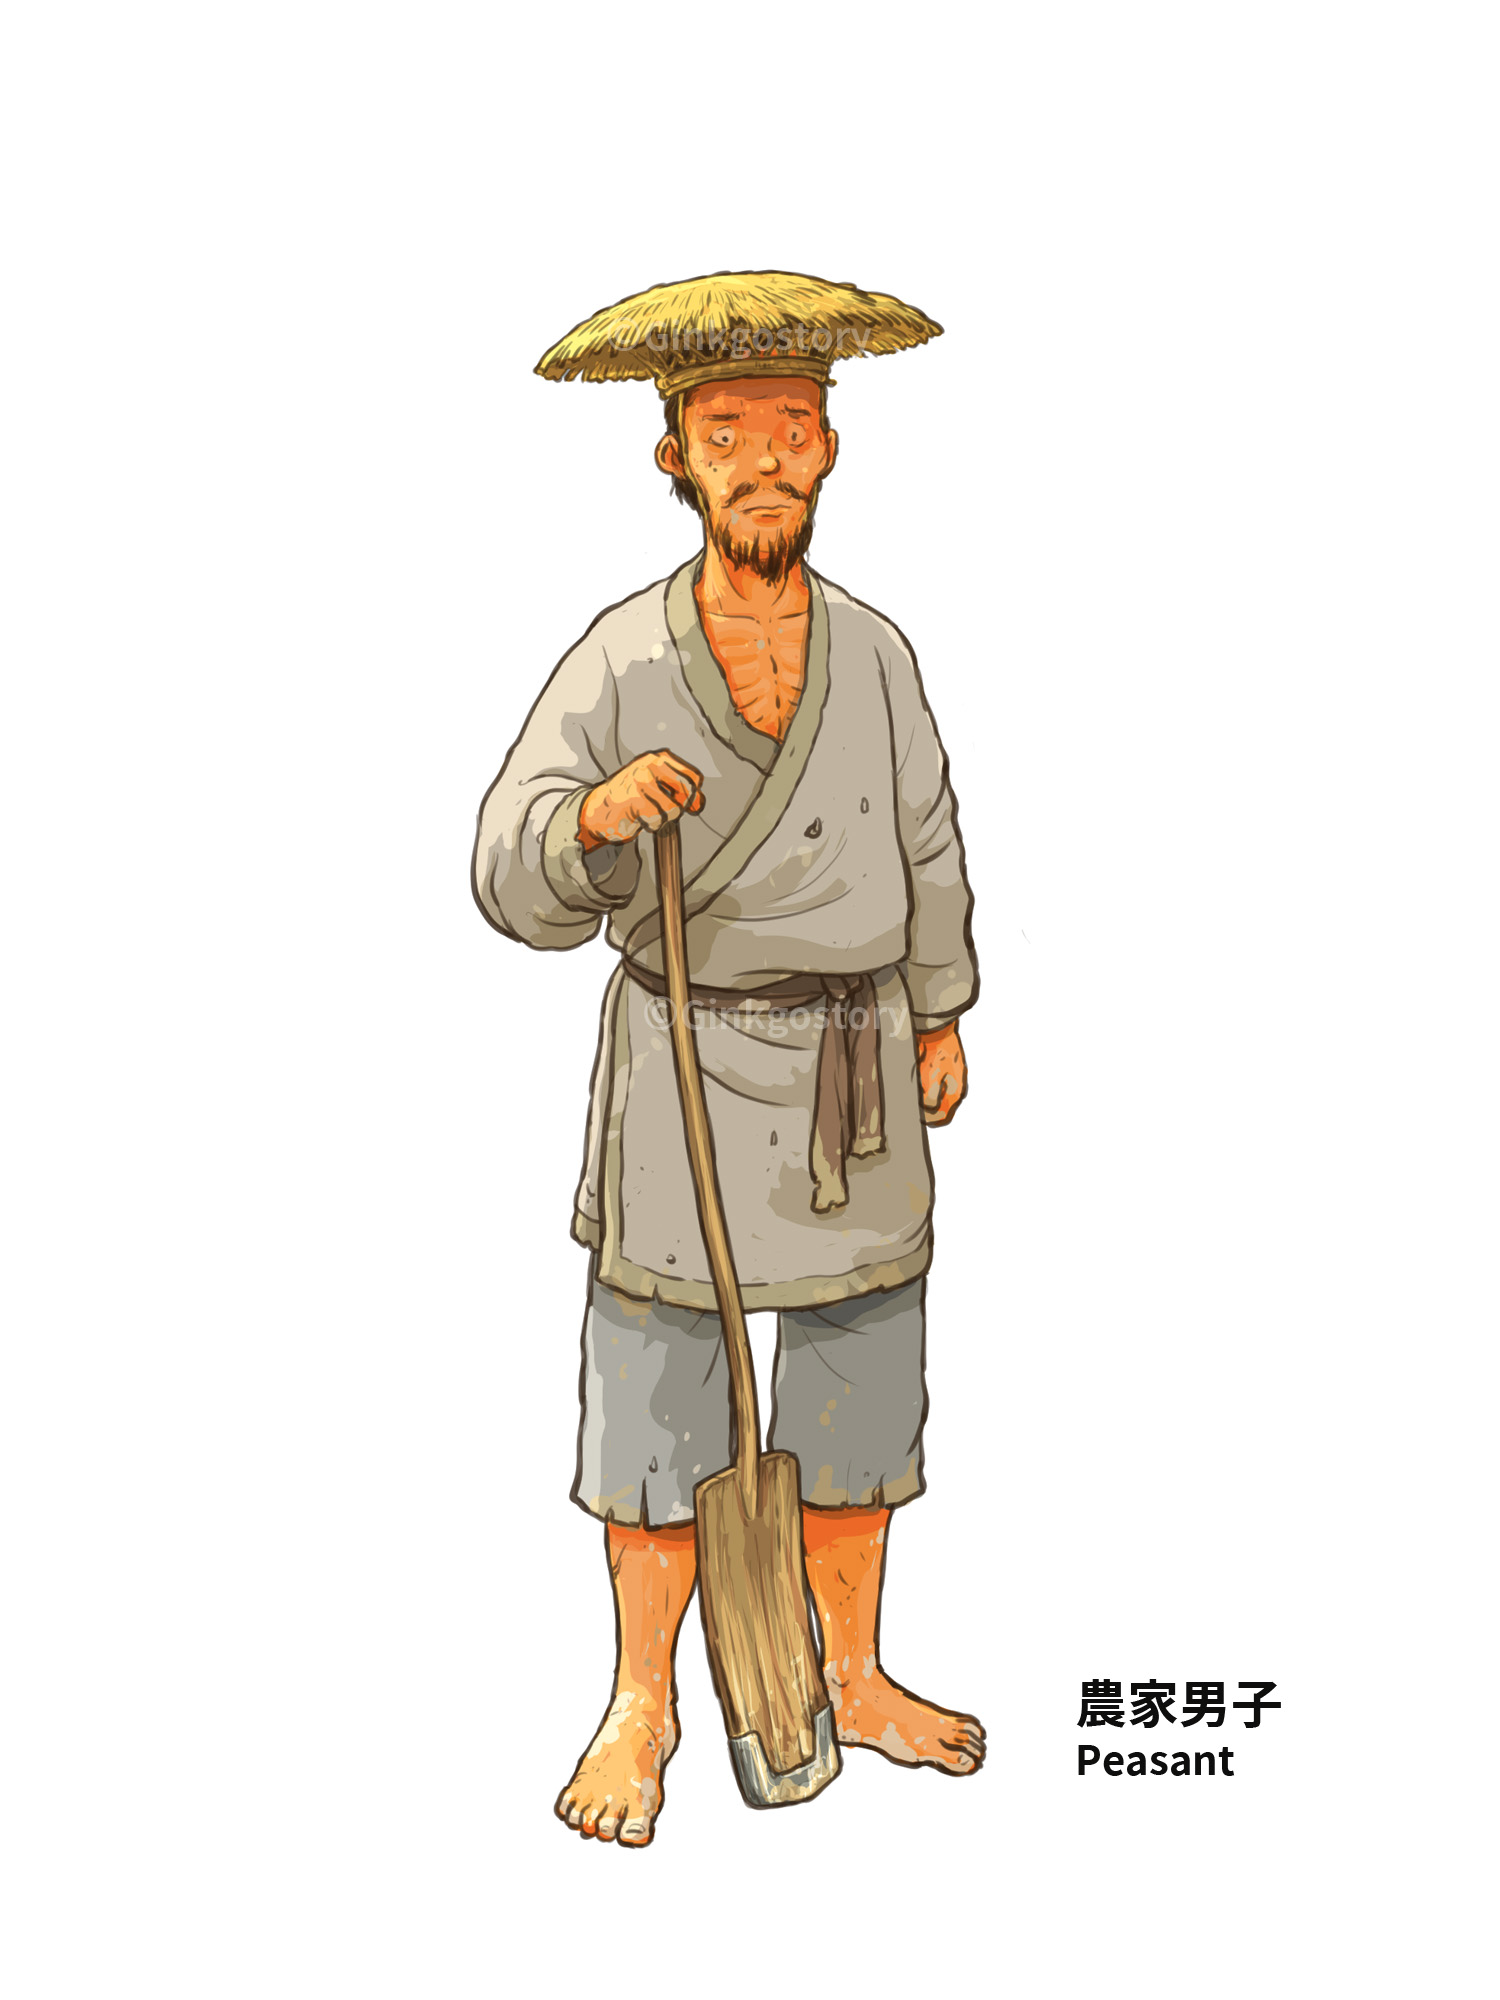 Three Kingdoms: Male Peasant